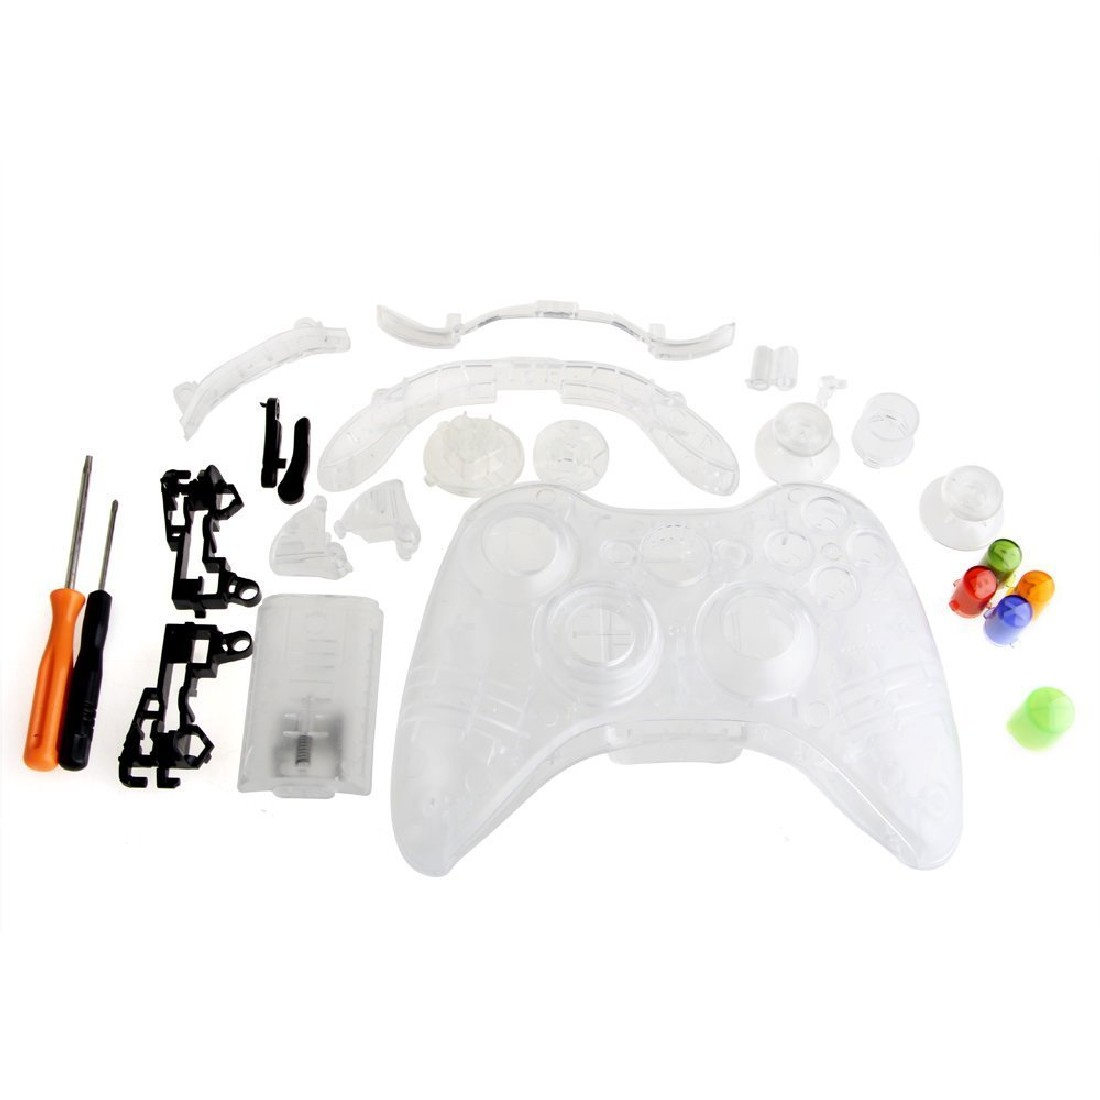 New Color Bottons & Clear Case Accessories Protection Cover Case Sets Tool For XBOX 360 Games Controller(China (Mainland))